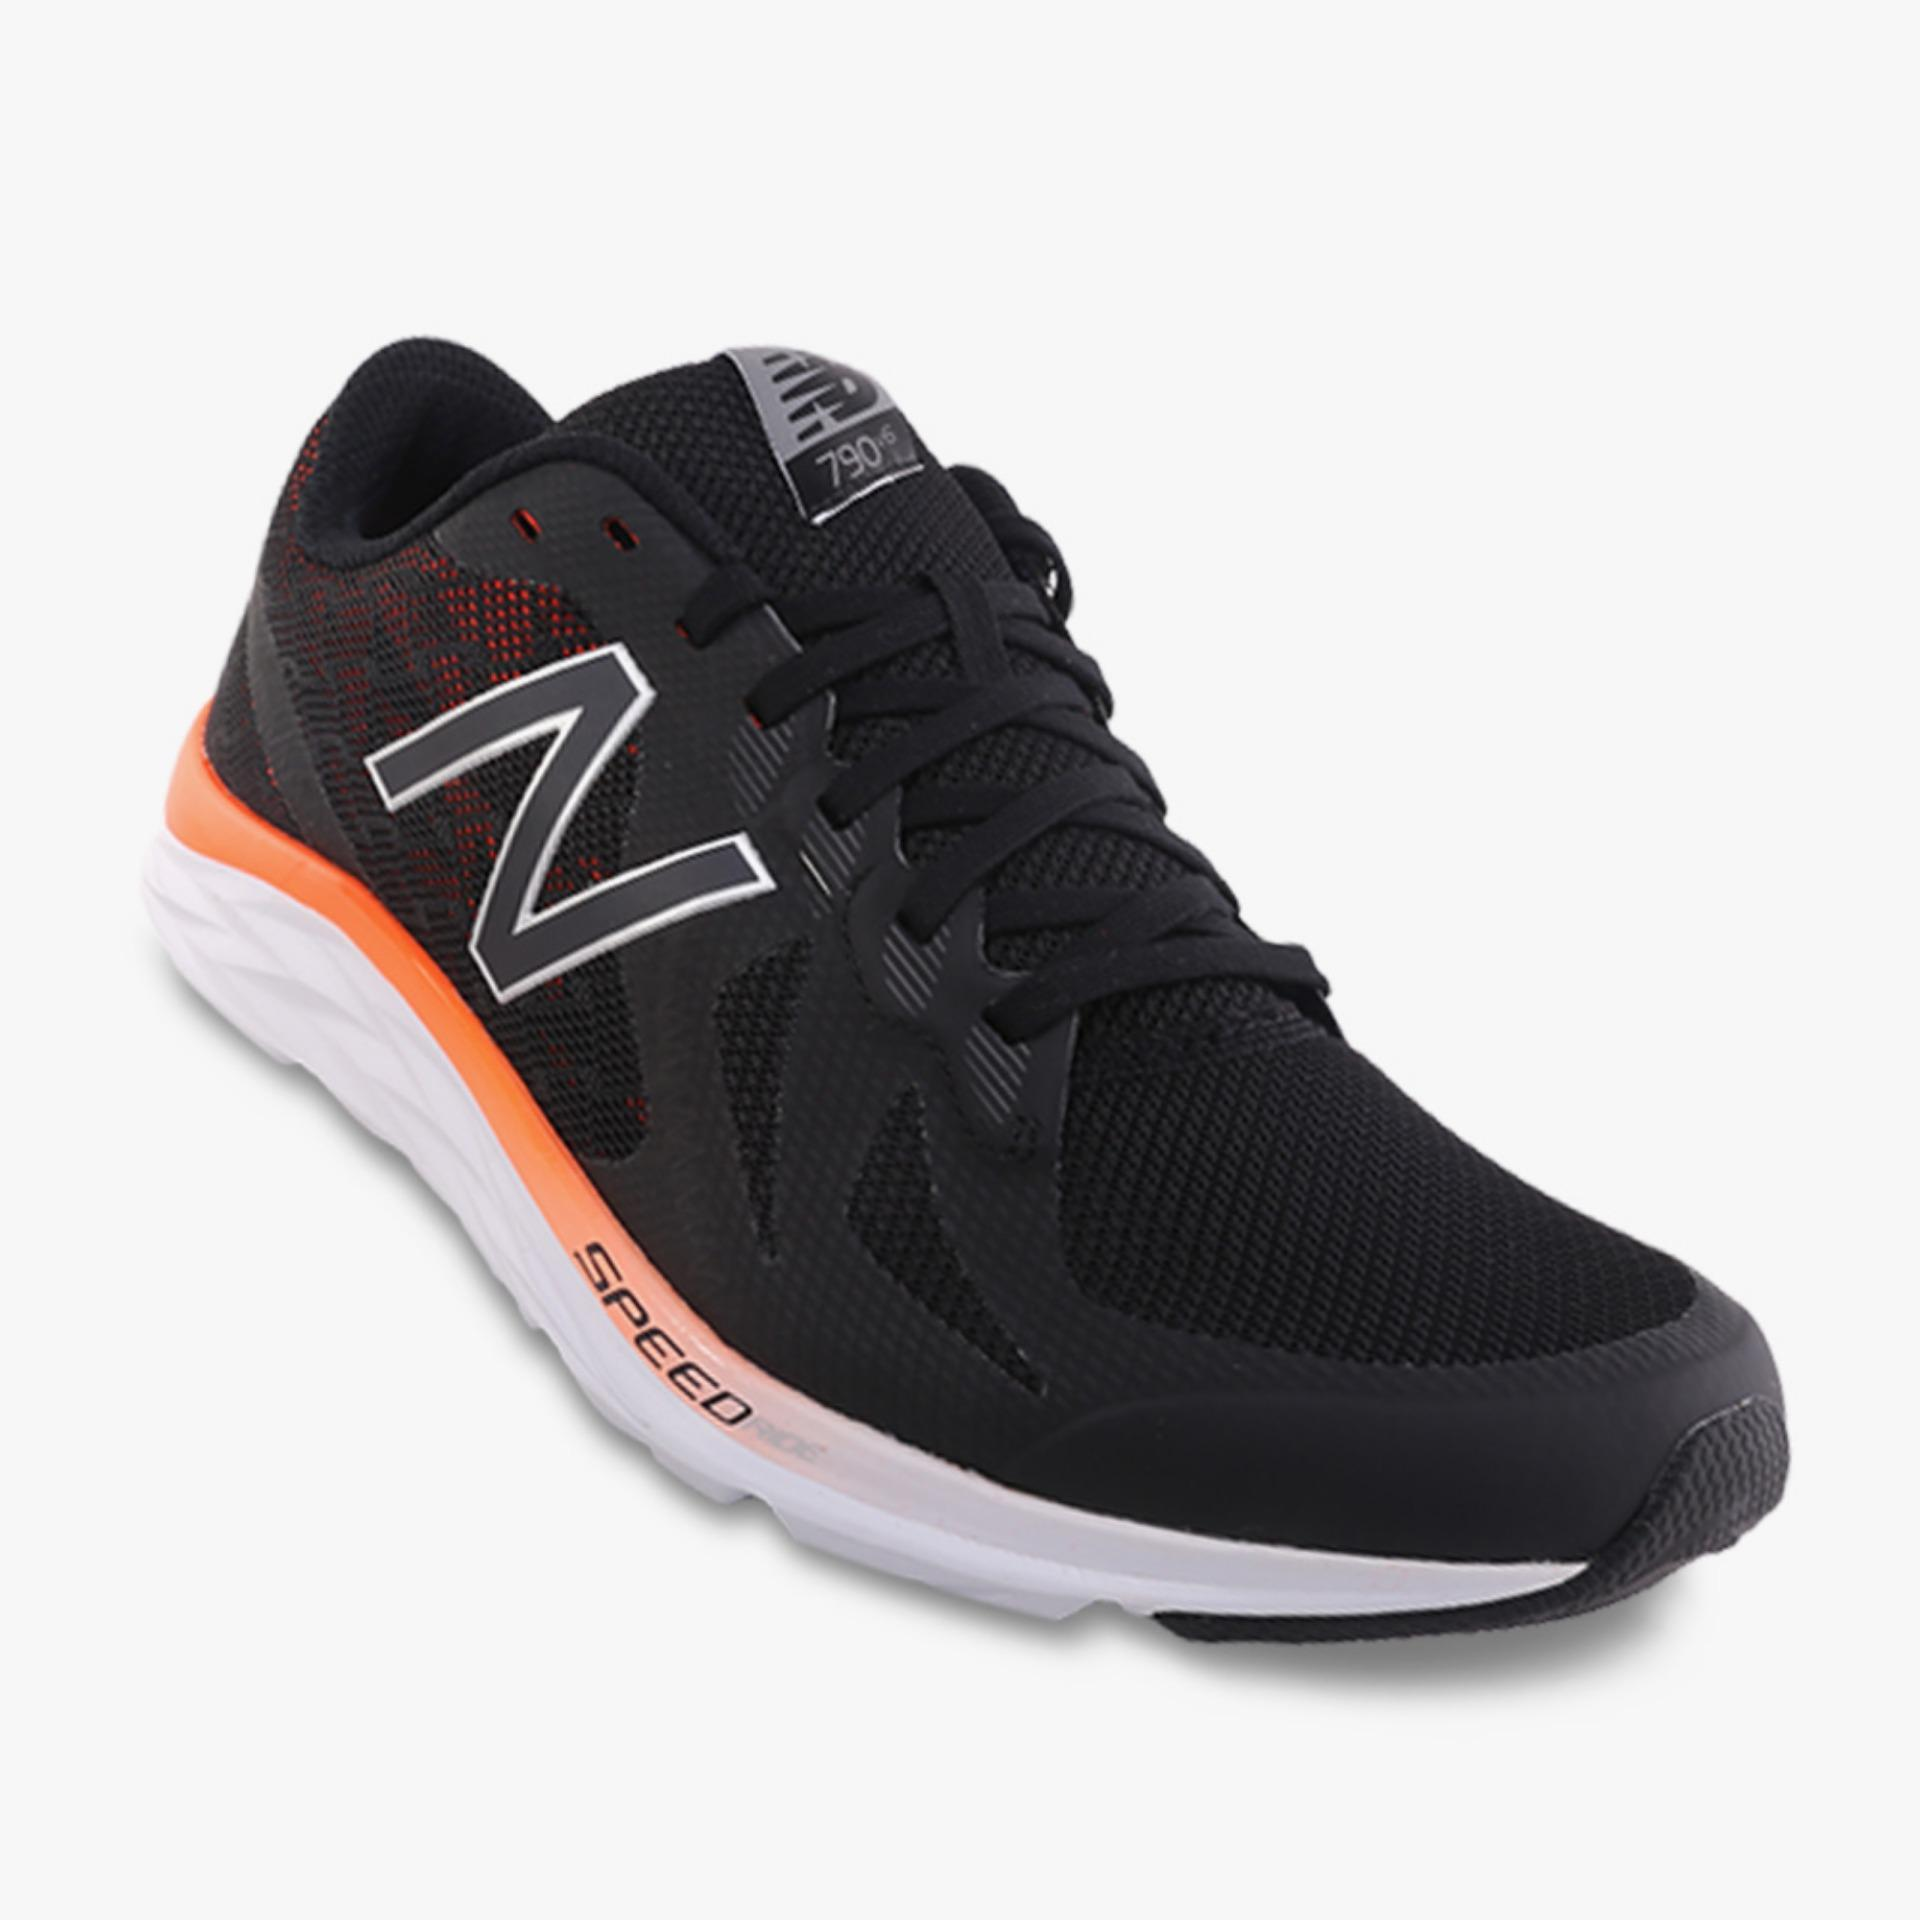 Jual New Balance Speed Ride 790 Men S Running Shoes Hitam Murah